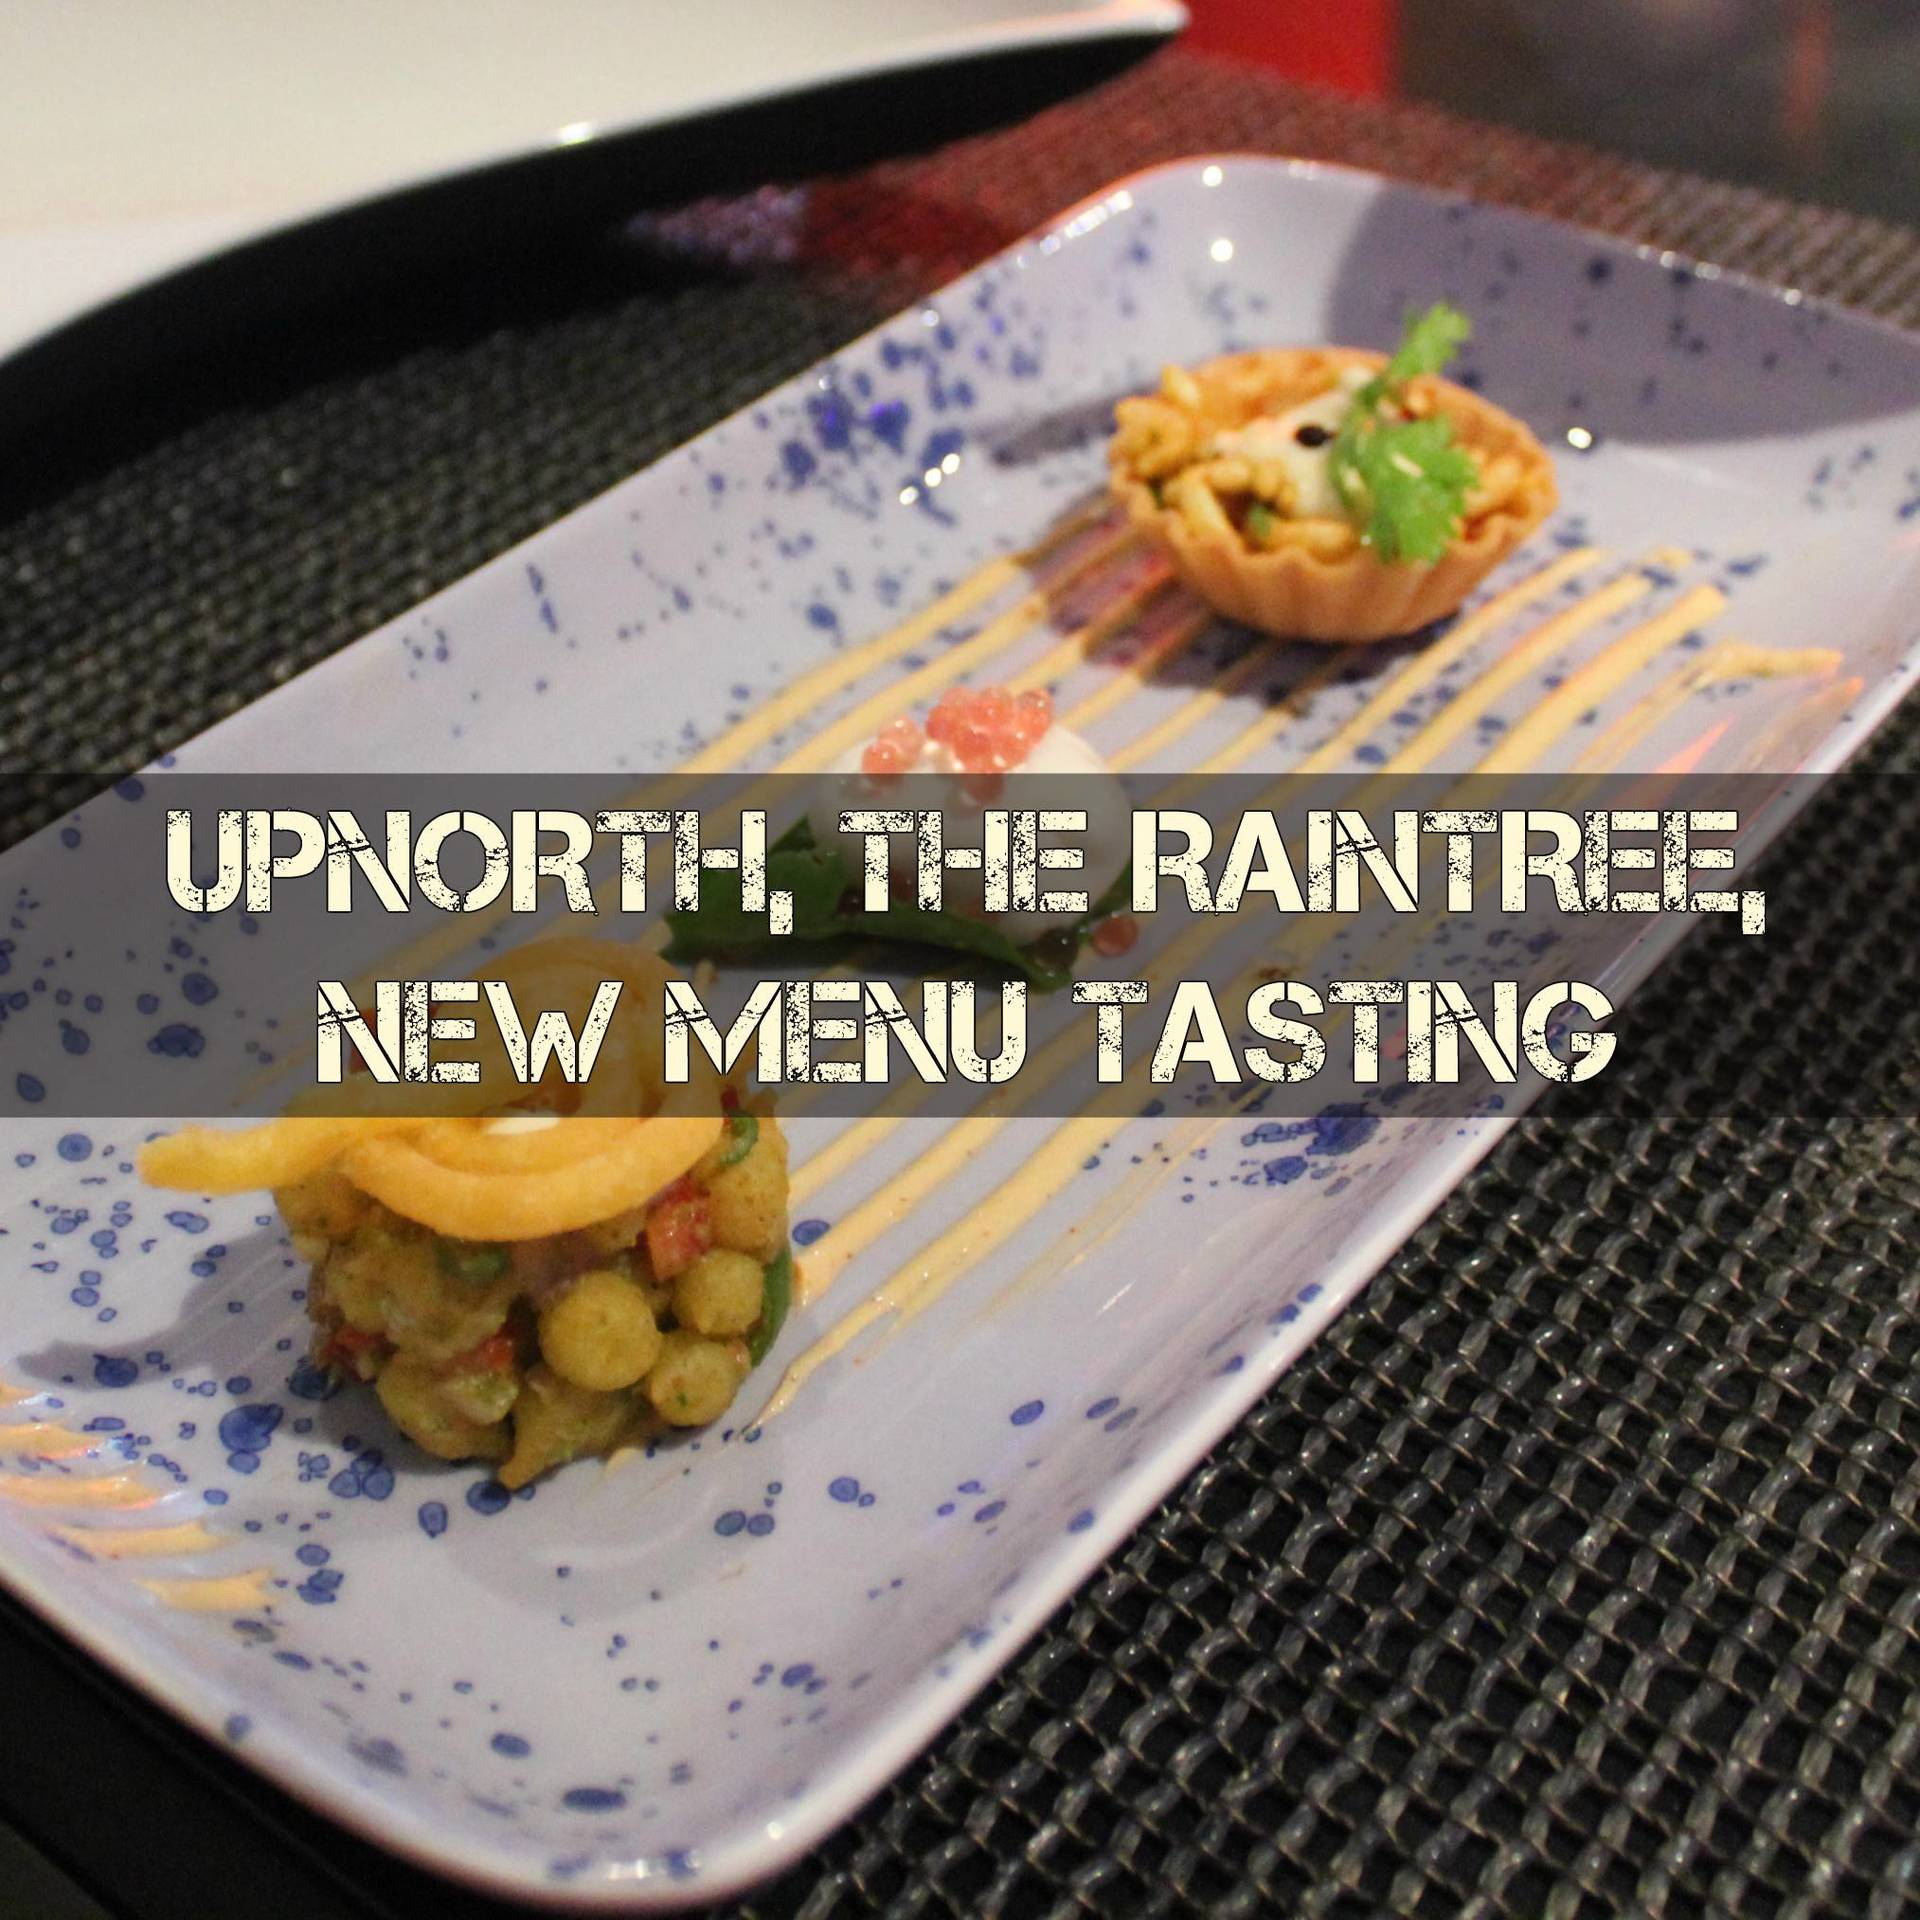 Upnorth, Rooftop Restaurant of The Raintree image